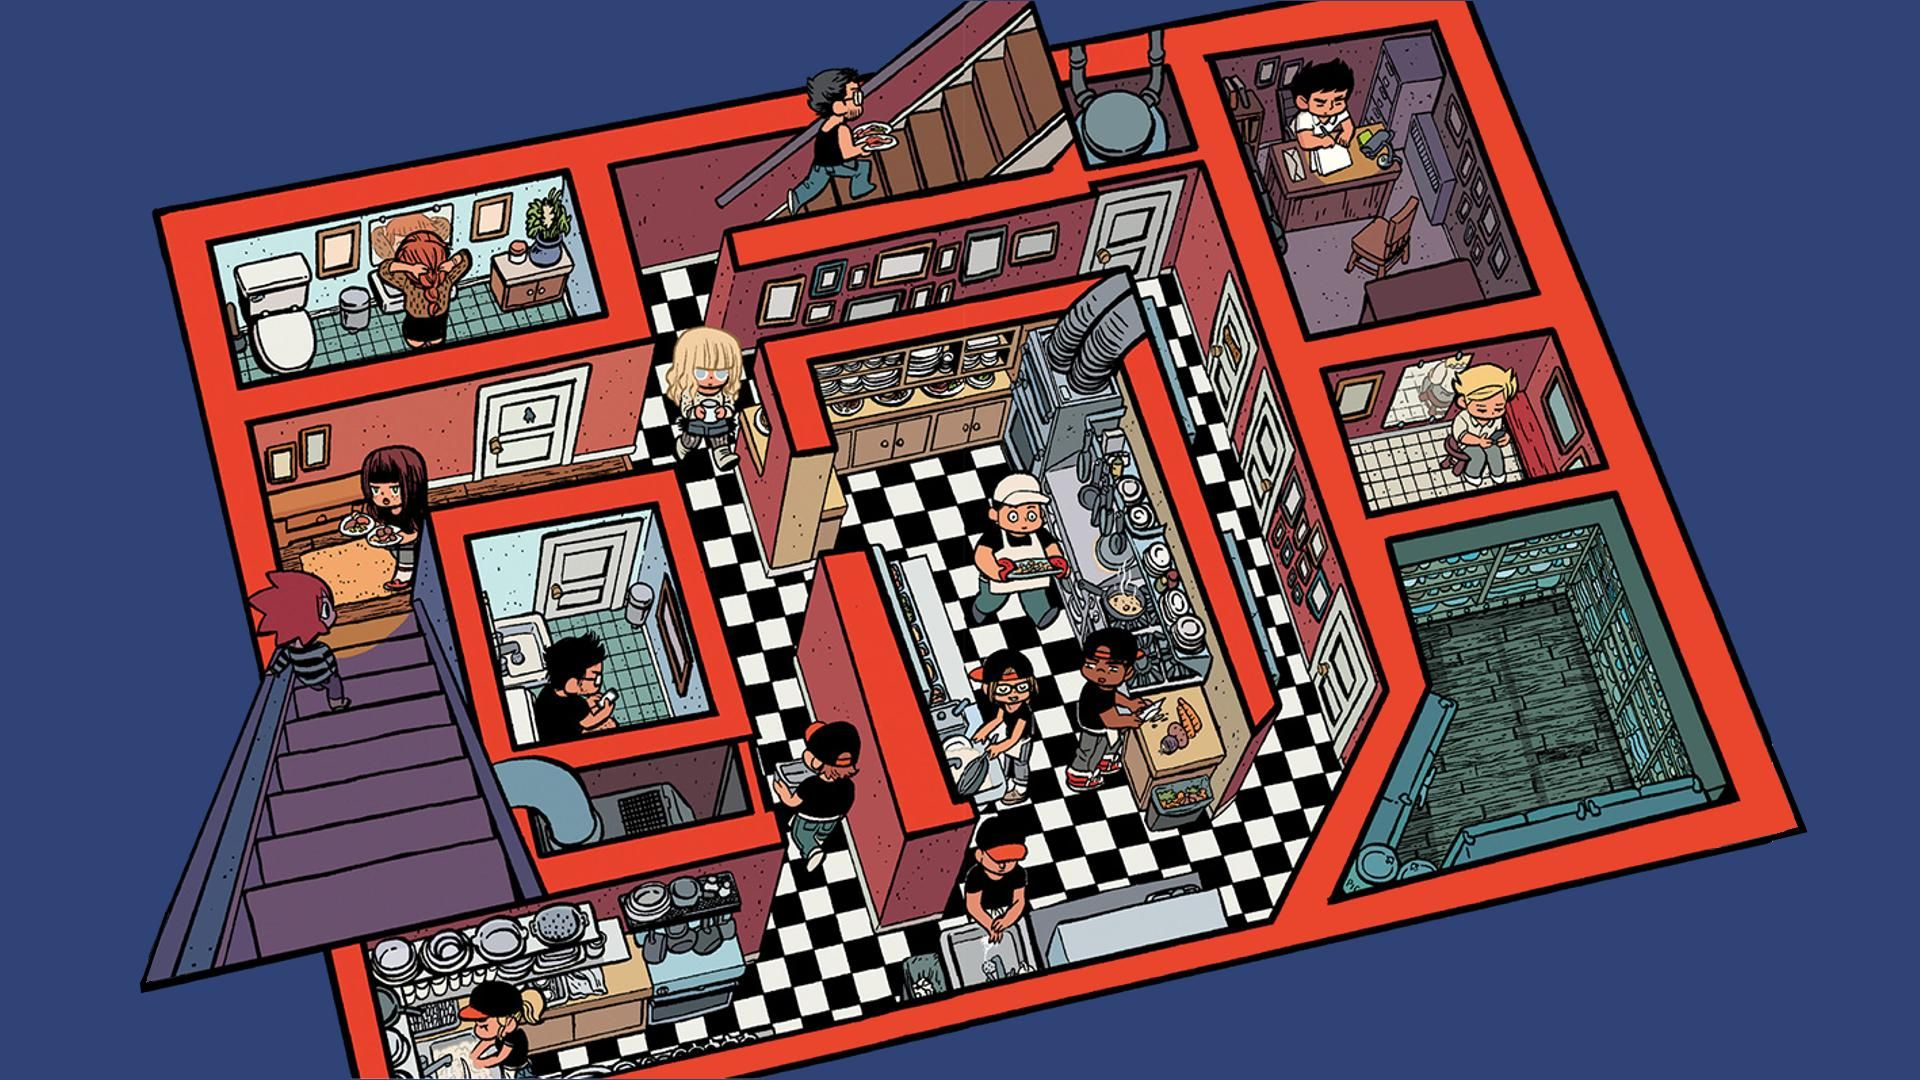 """My favorite page from Bryan Lee O'Malley's New book """"seconds"""" [1920x1080]"""